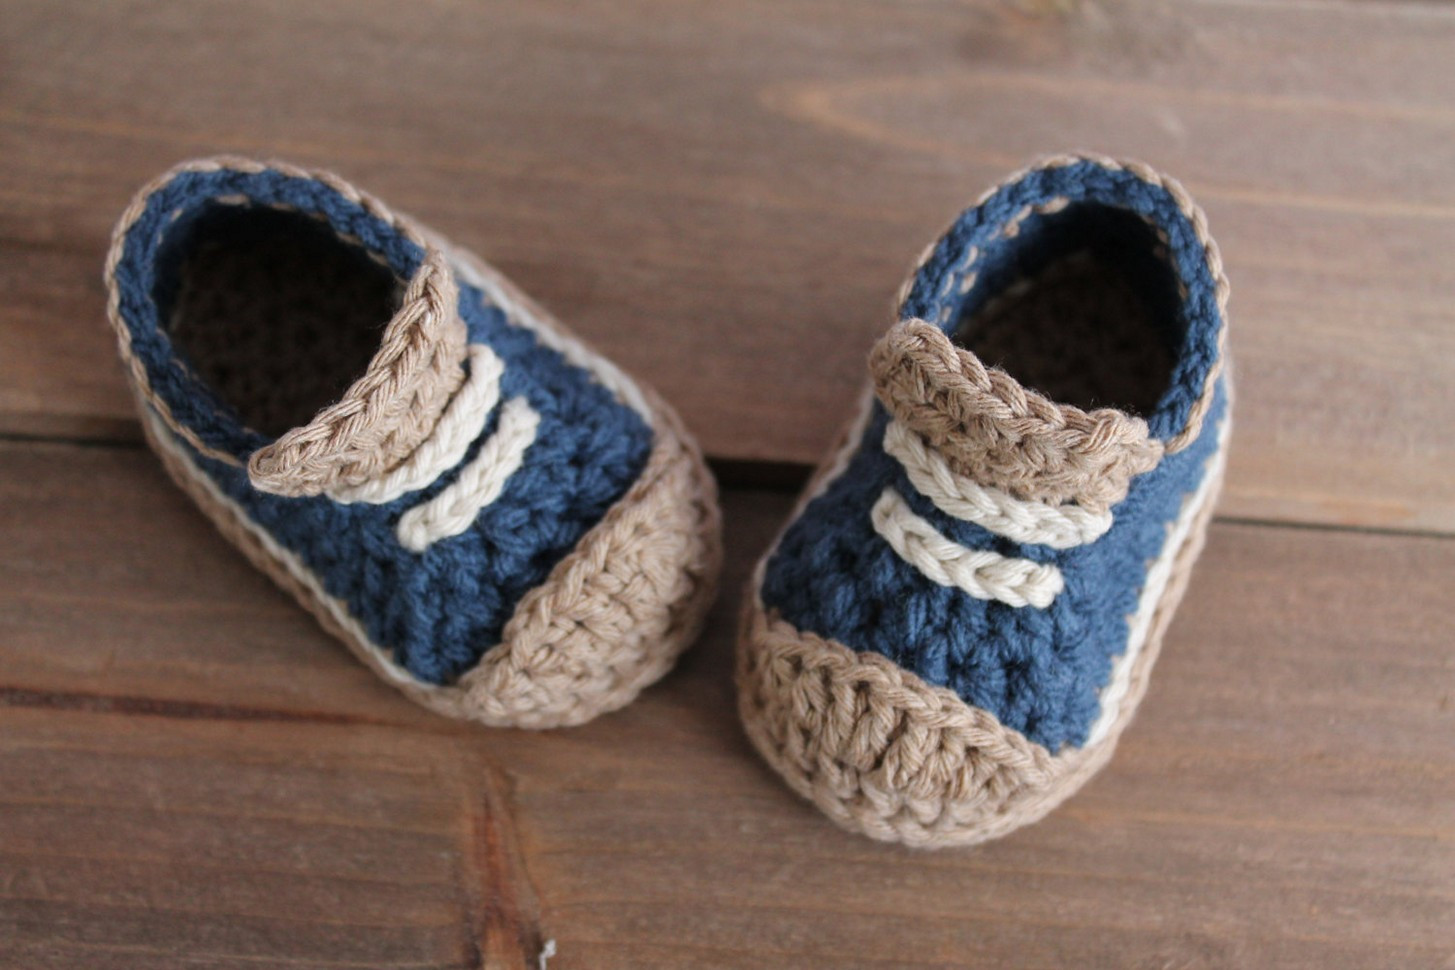 Free Crochet Patterns for Baby Shoes Beautiful Baby Crochet Sandals Several Pieces Of Ideas You Can Try Of Wonderful 50 Photos Free Crochet Patterns for Baby Shoes